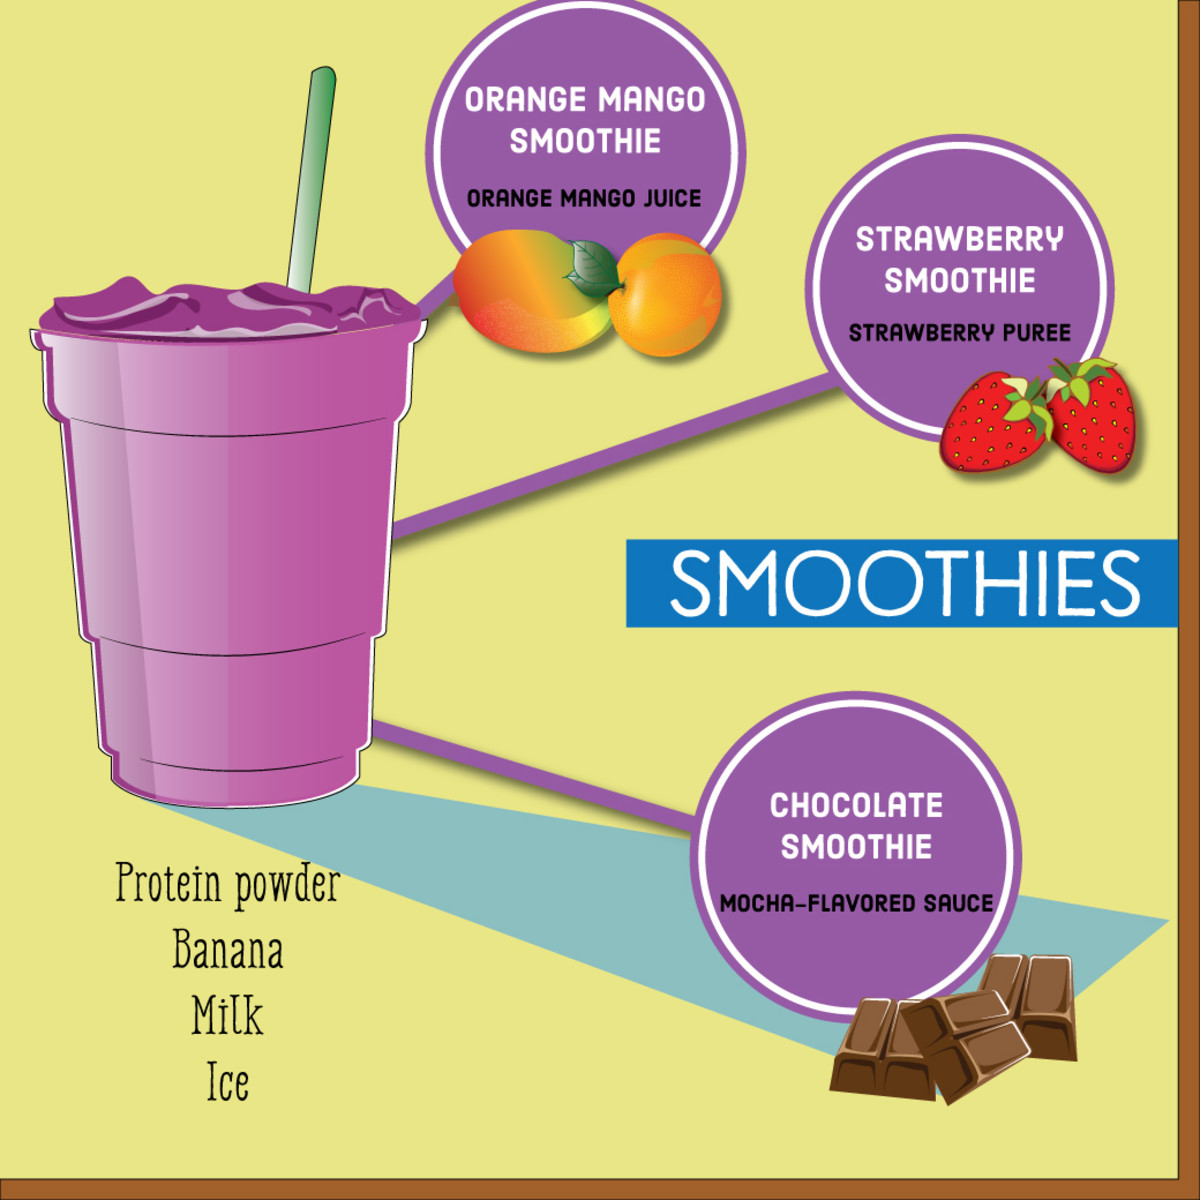 Smoothies are another delicious coffee-free drink option.